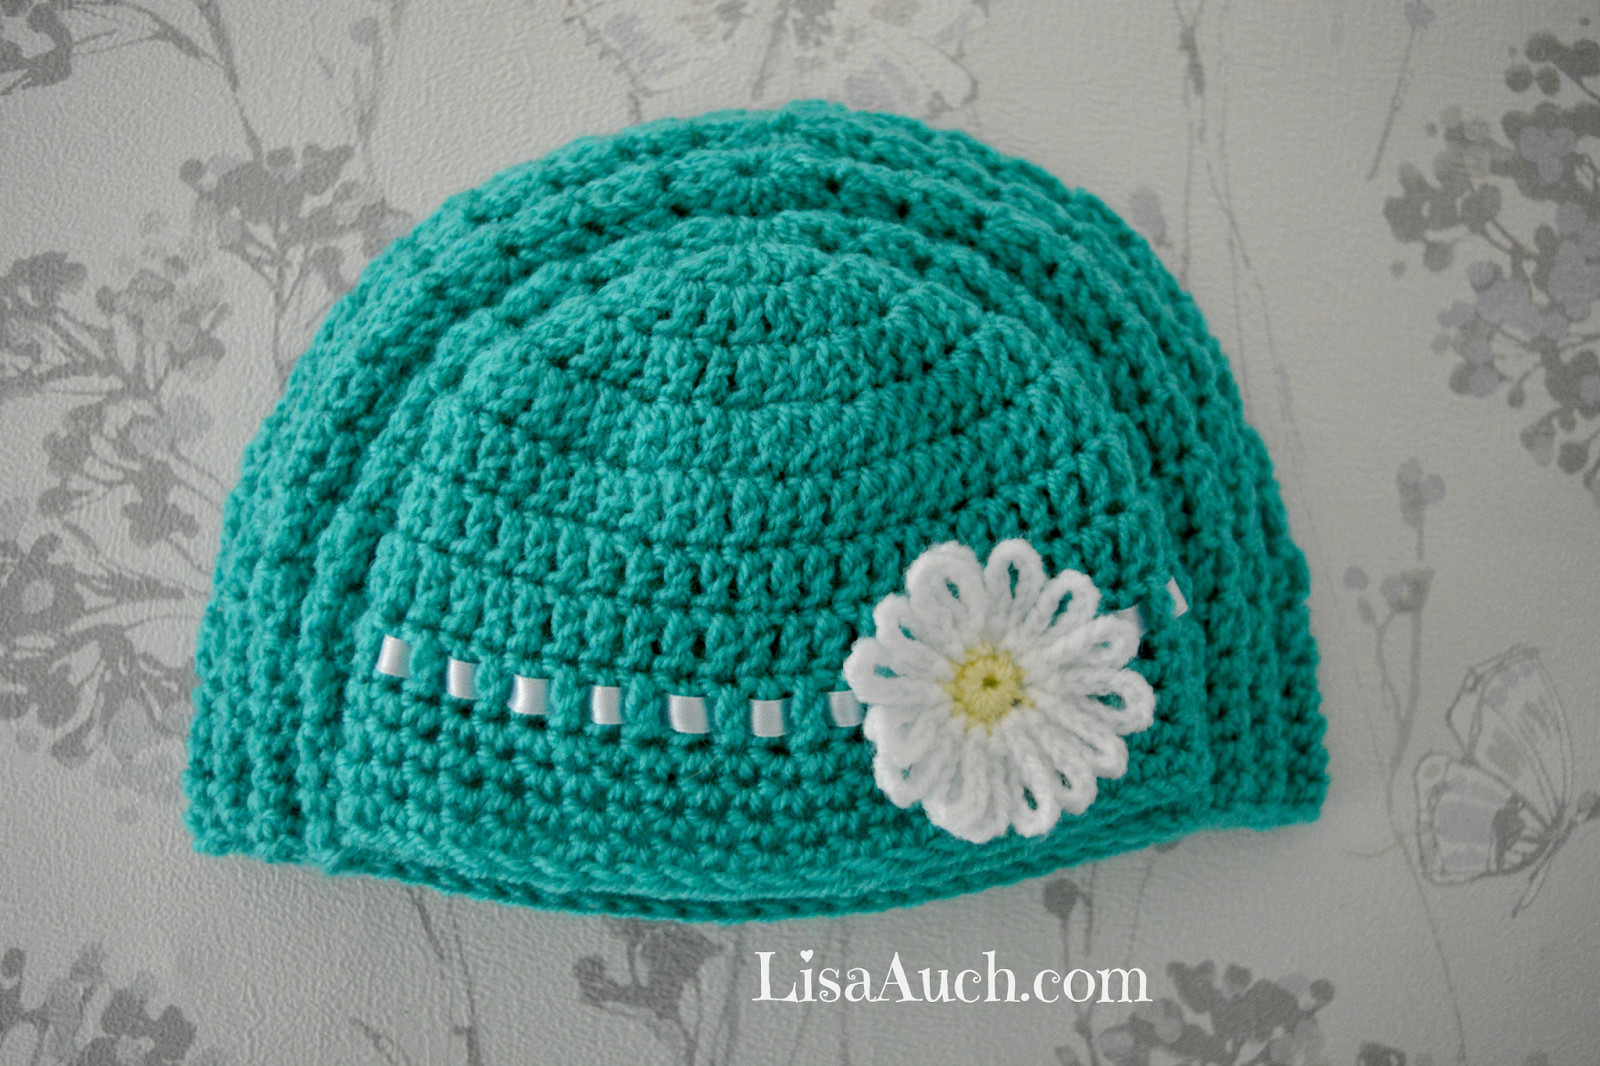 New Free Easy Crochet Baby Hat Pattern with Crochet Flower Free Crochet Patterns for toddlers Of Brilliant 47 Photos Free Crochet Patterns for toddlers